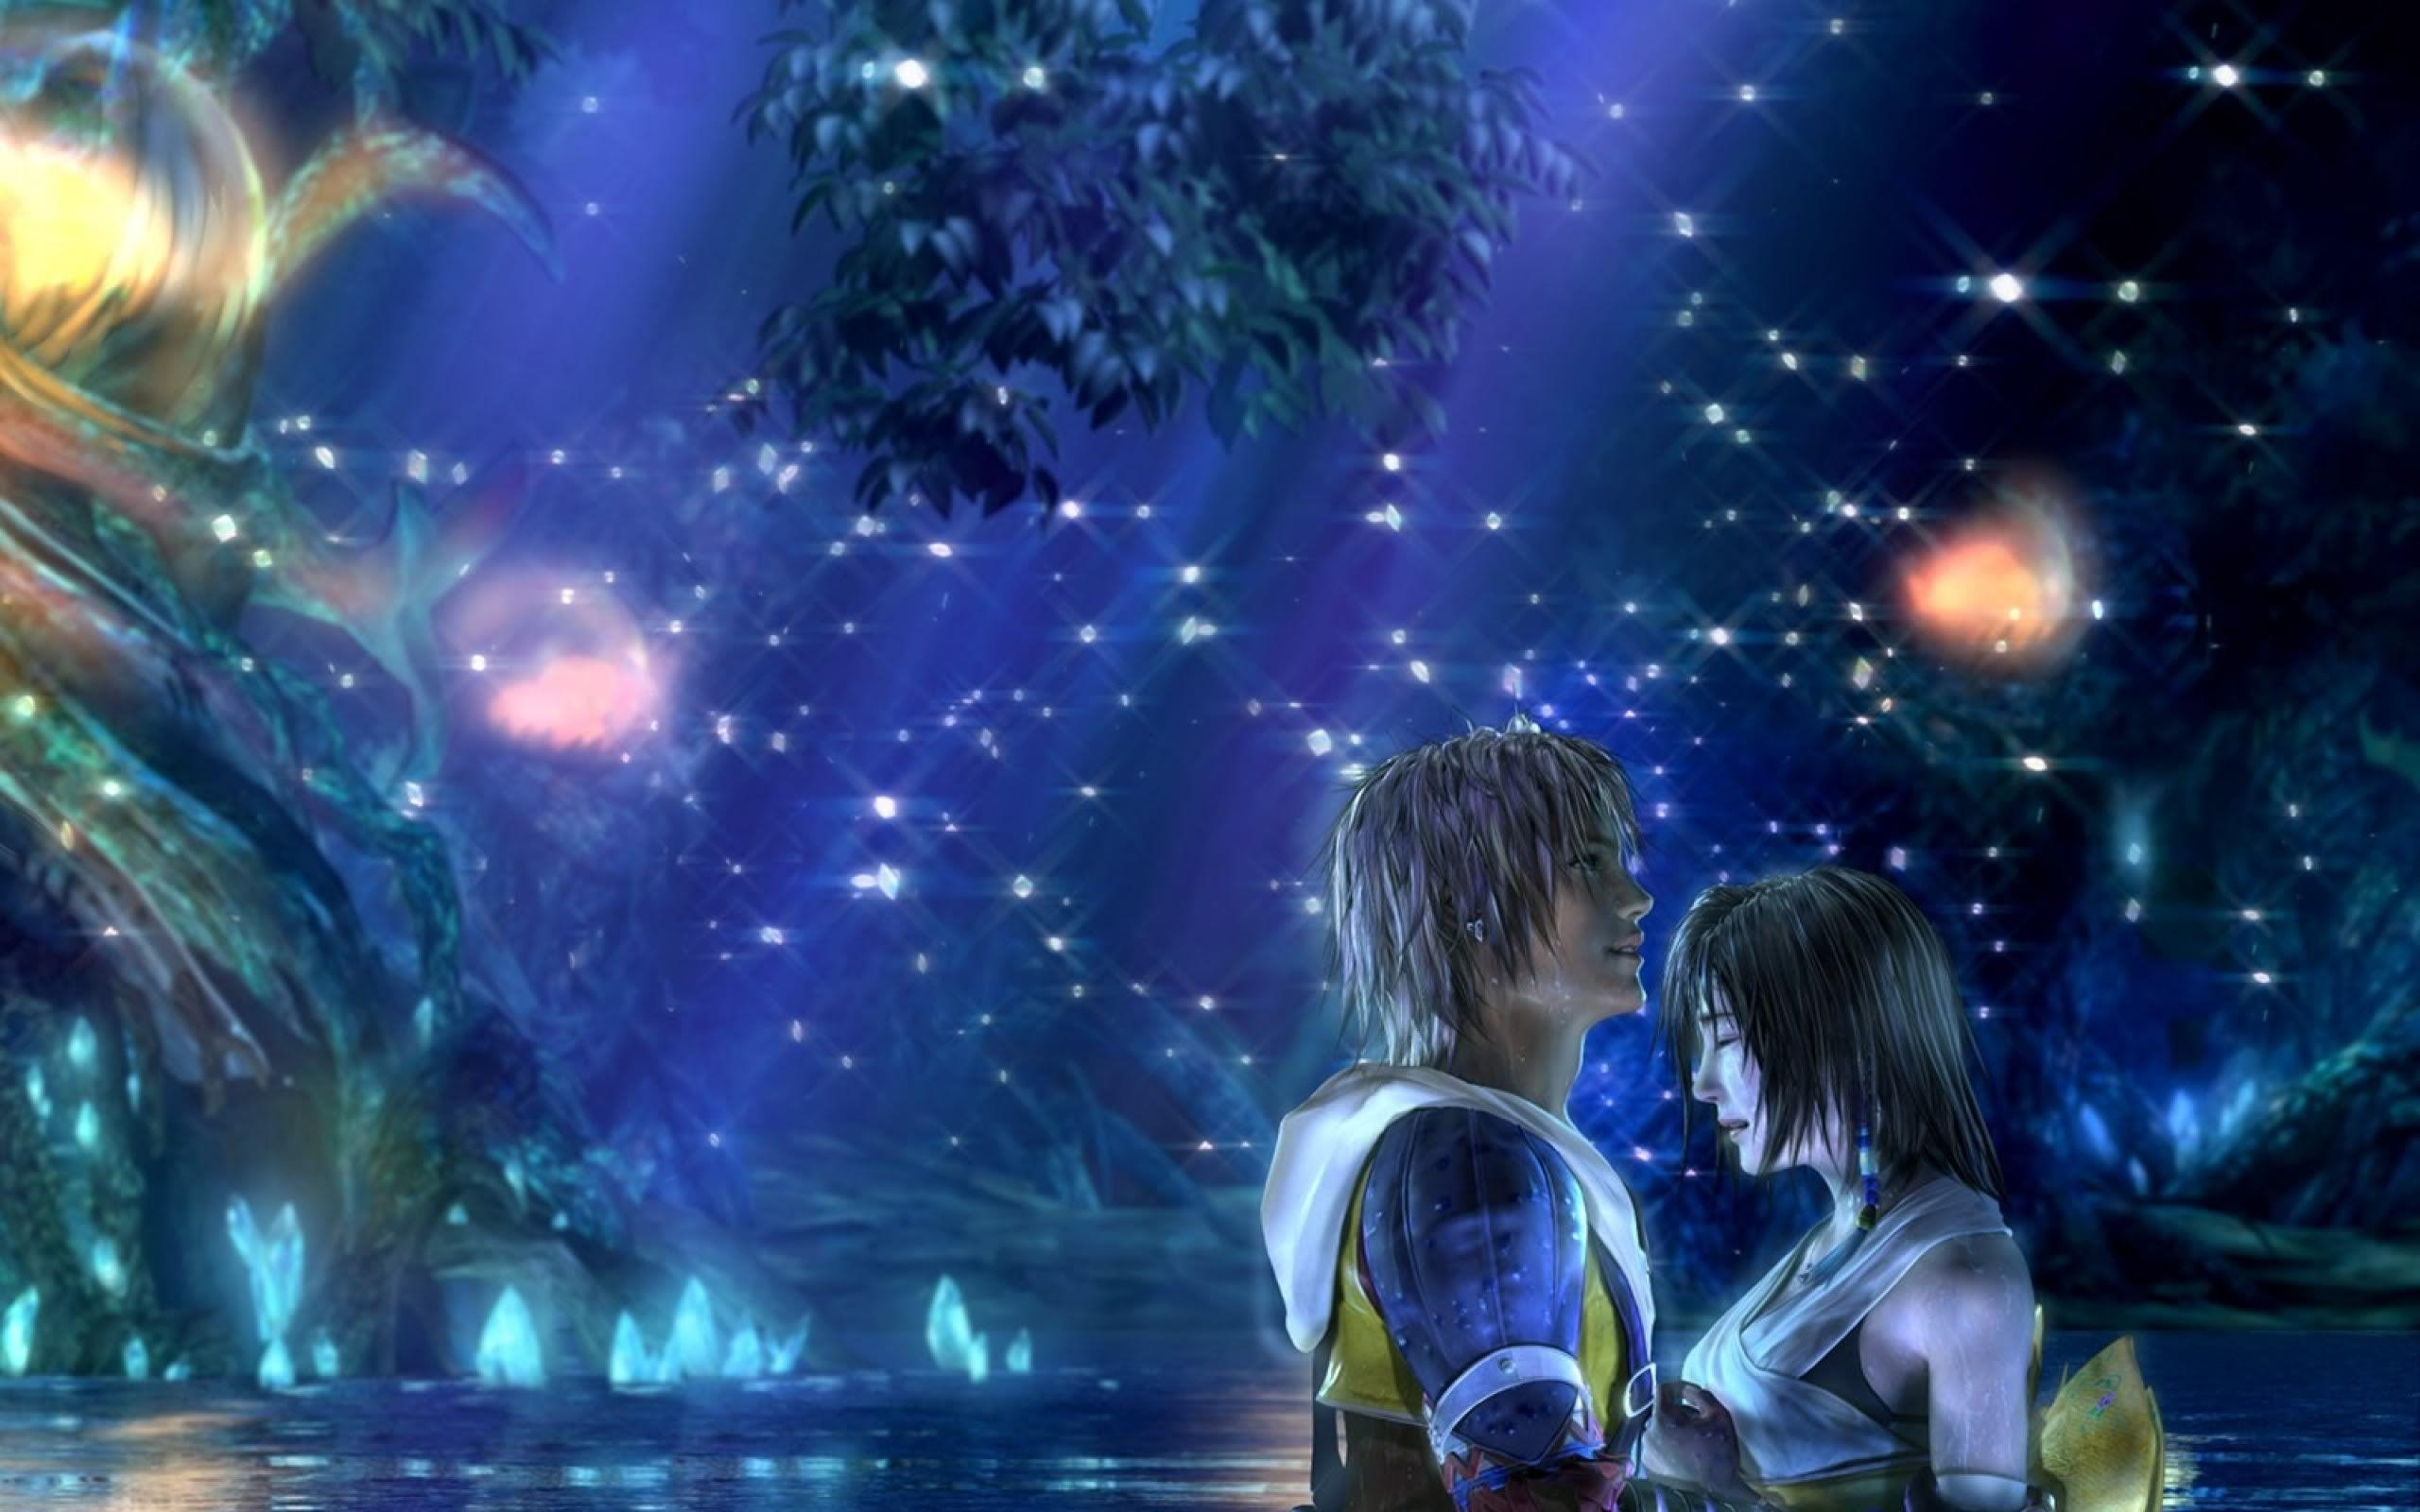 wallpaper final fantasy 10 4rthcvi - top backgrounds & wallpapers